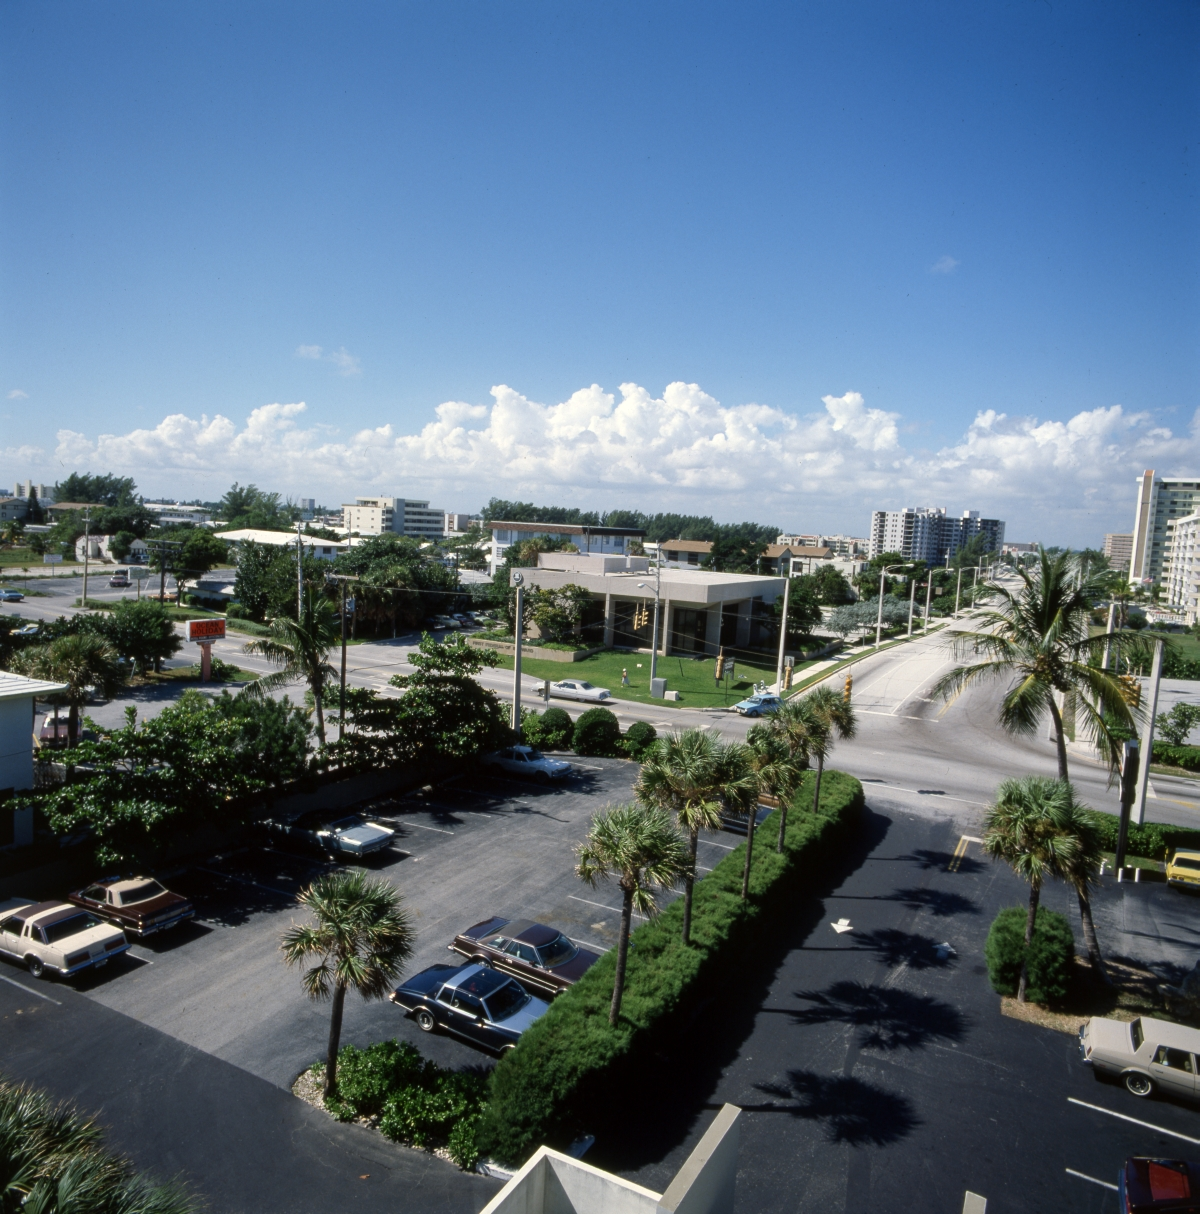 Aerial view looking west over a section of Pompano Beach.